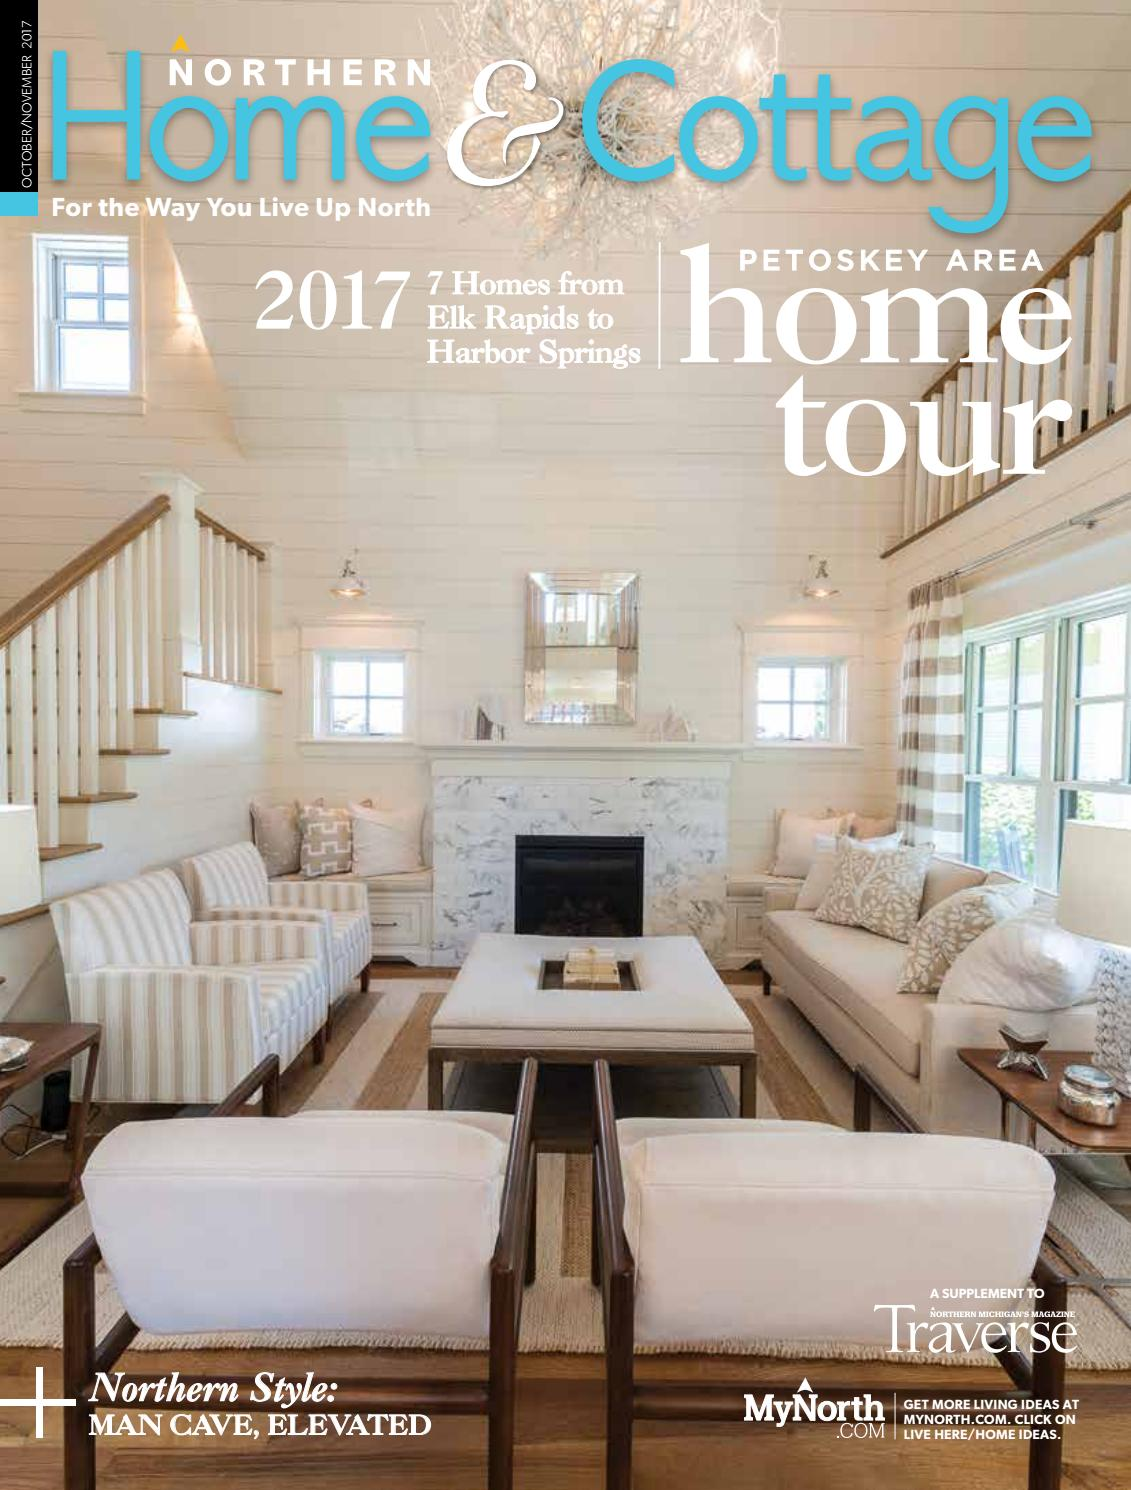 Northern Home & Cottage 1017 by MyNorth - issuu